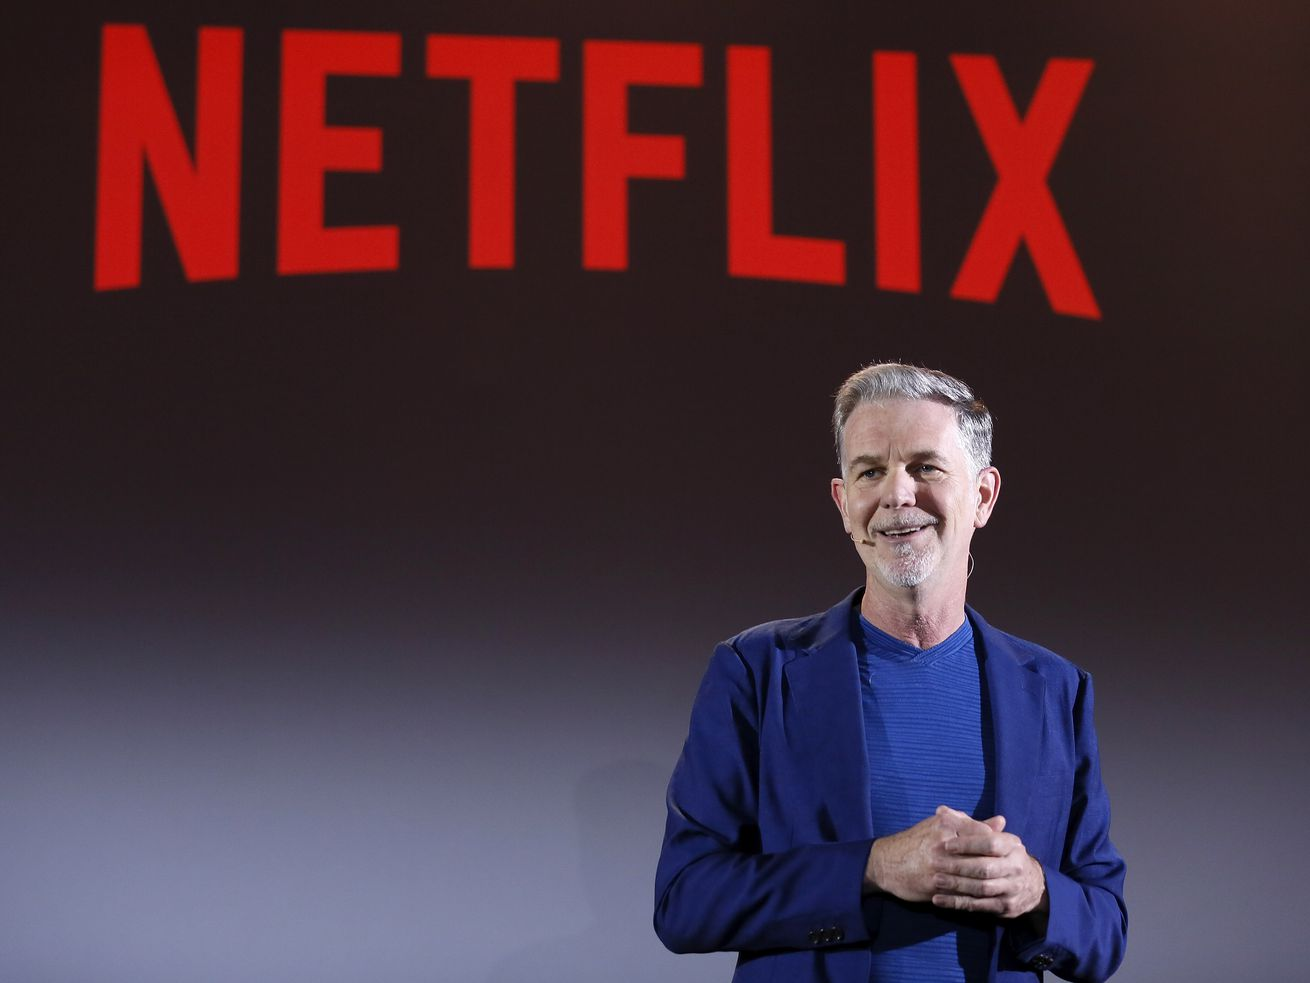 Netflix CEO Reed Hastings says the obvious: He won't be working with Apple when it launches its new video plans